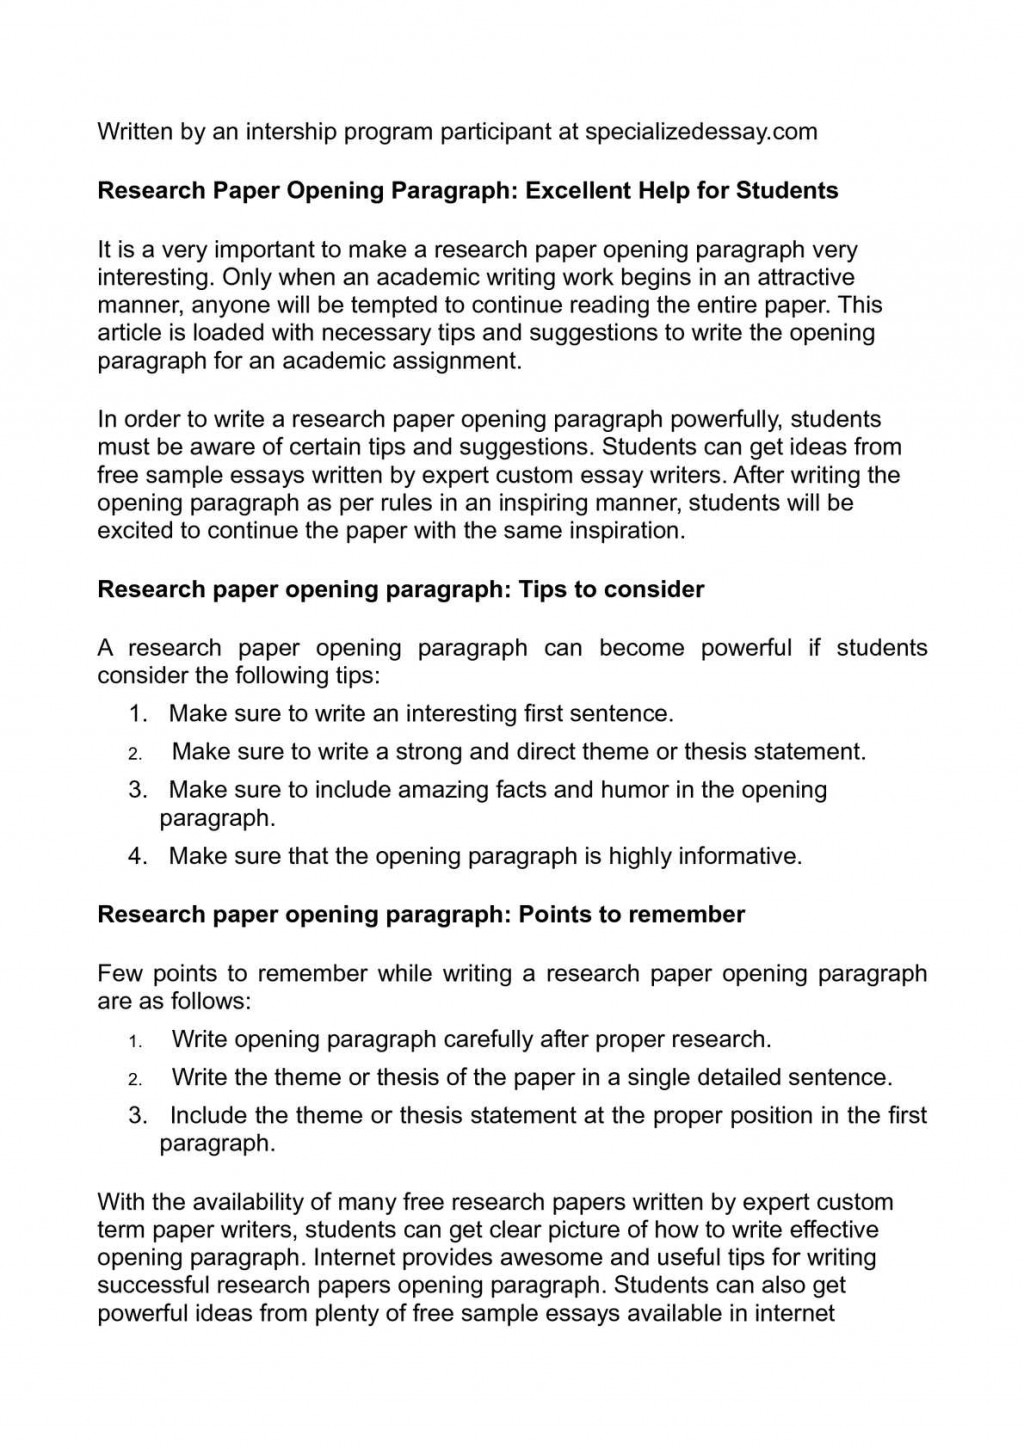 017 Cool Topics To Do Research Paper On Impressive A For Papers In Education Interesting Write Sports Large